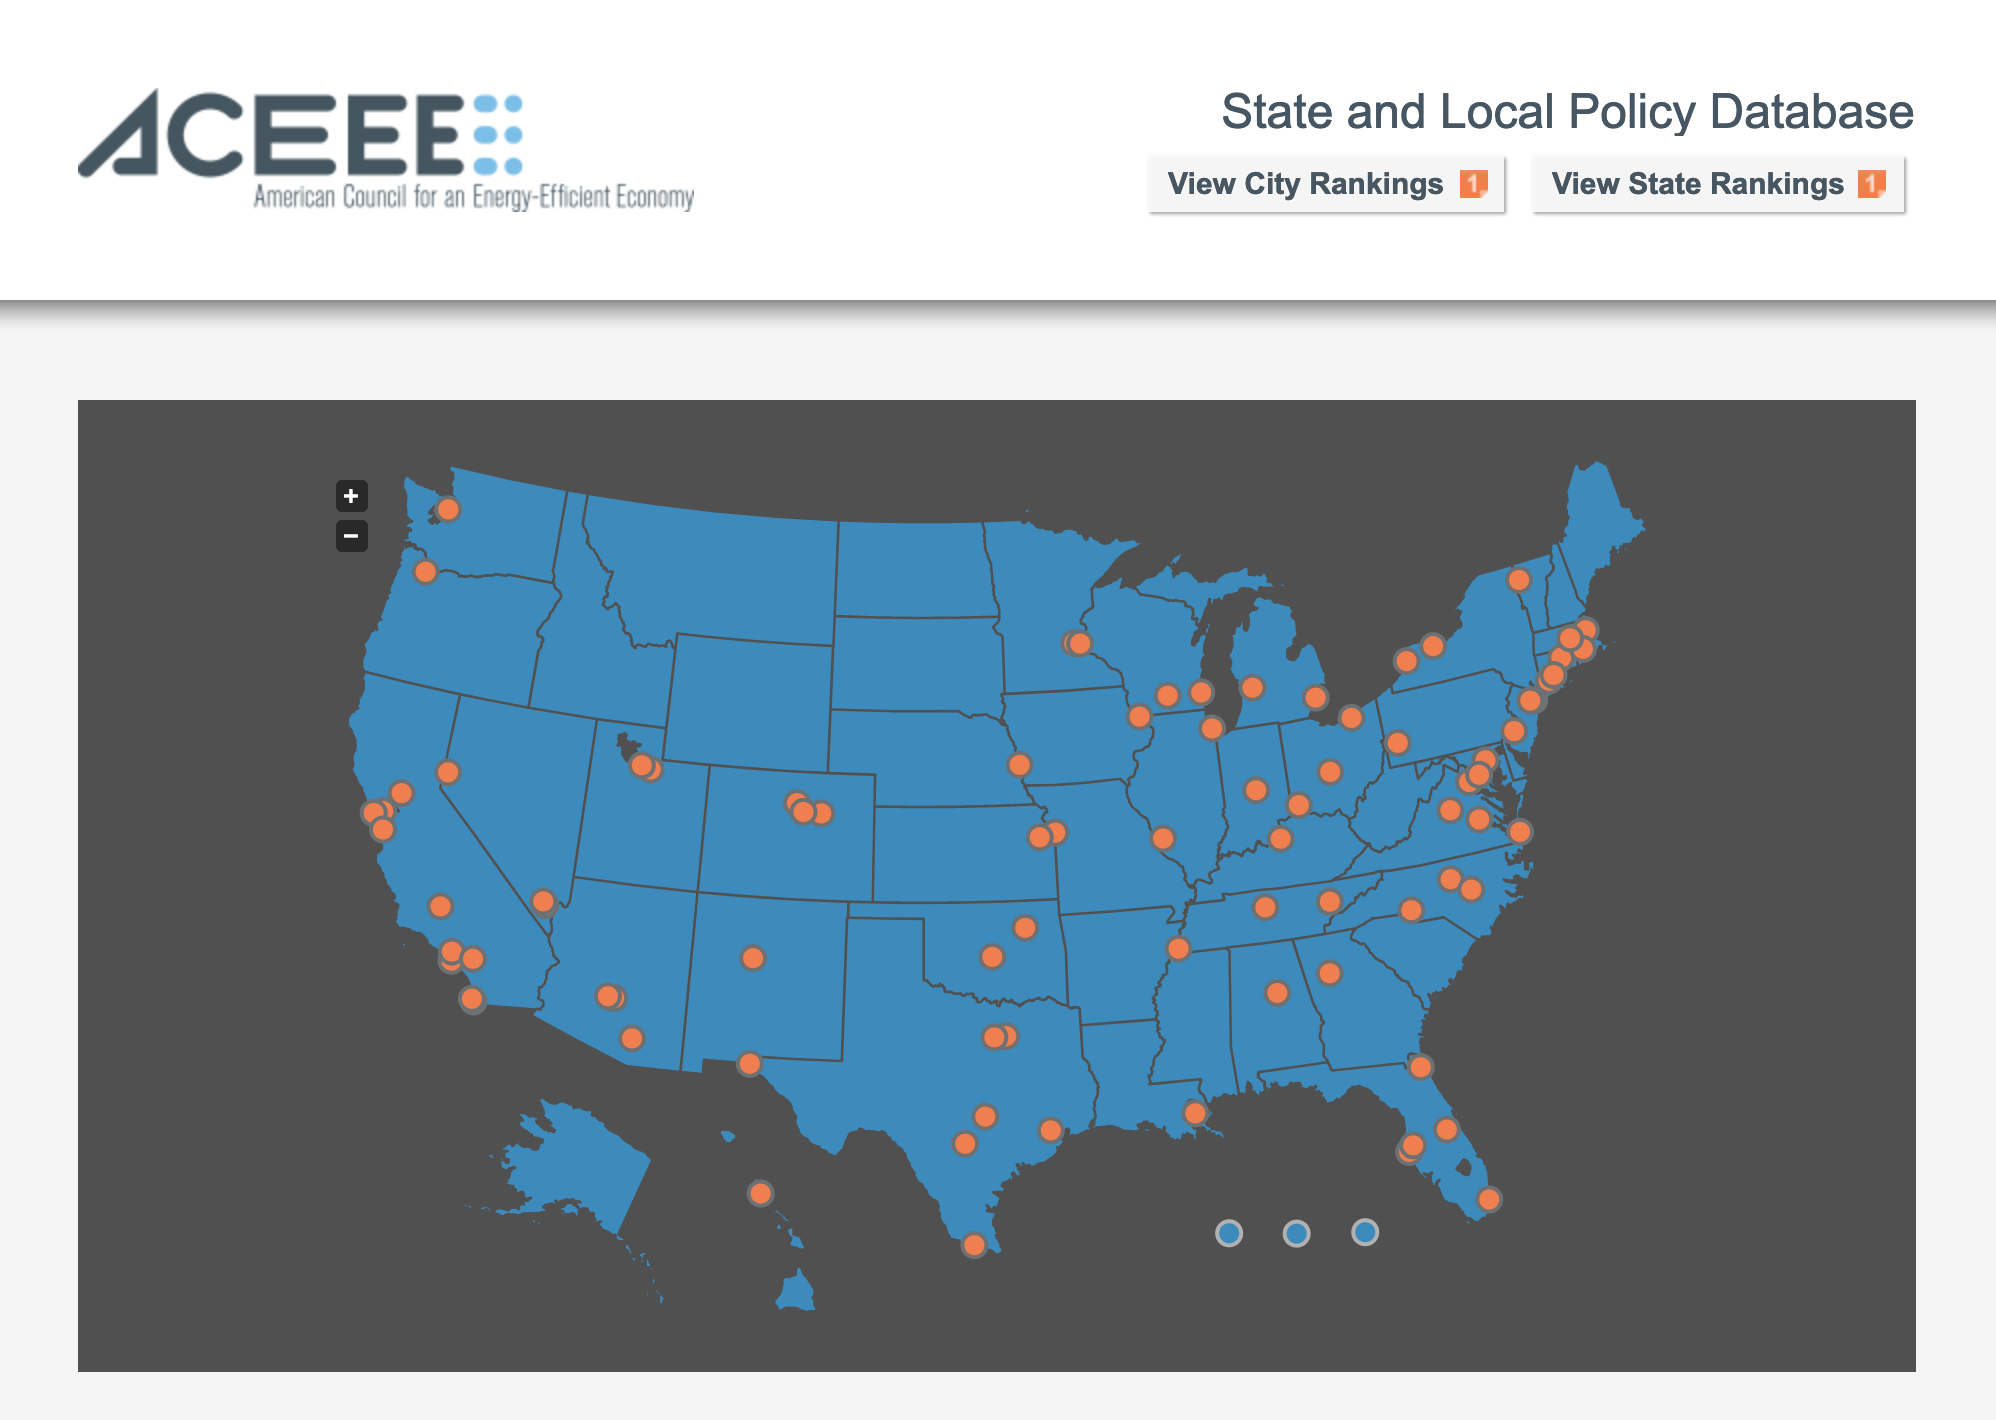 ACEEE State and Local Policy Database screenshot